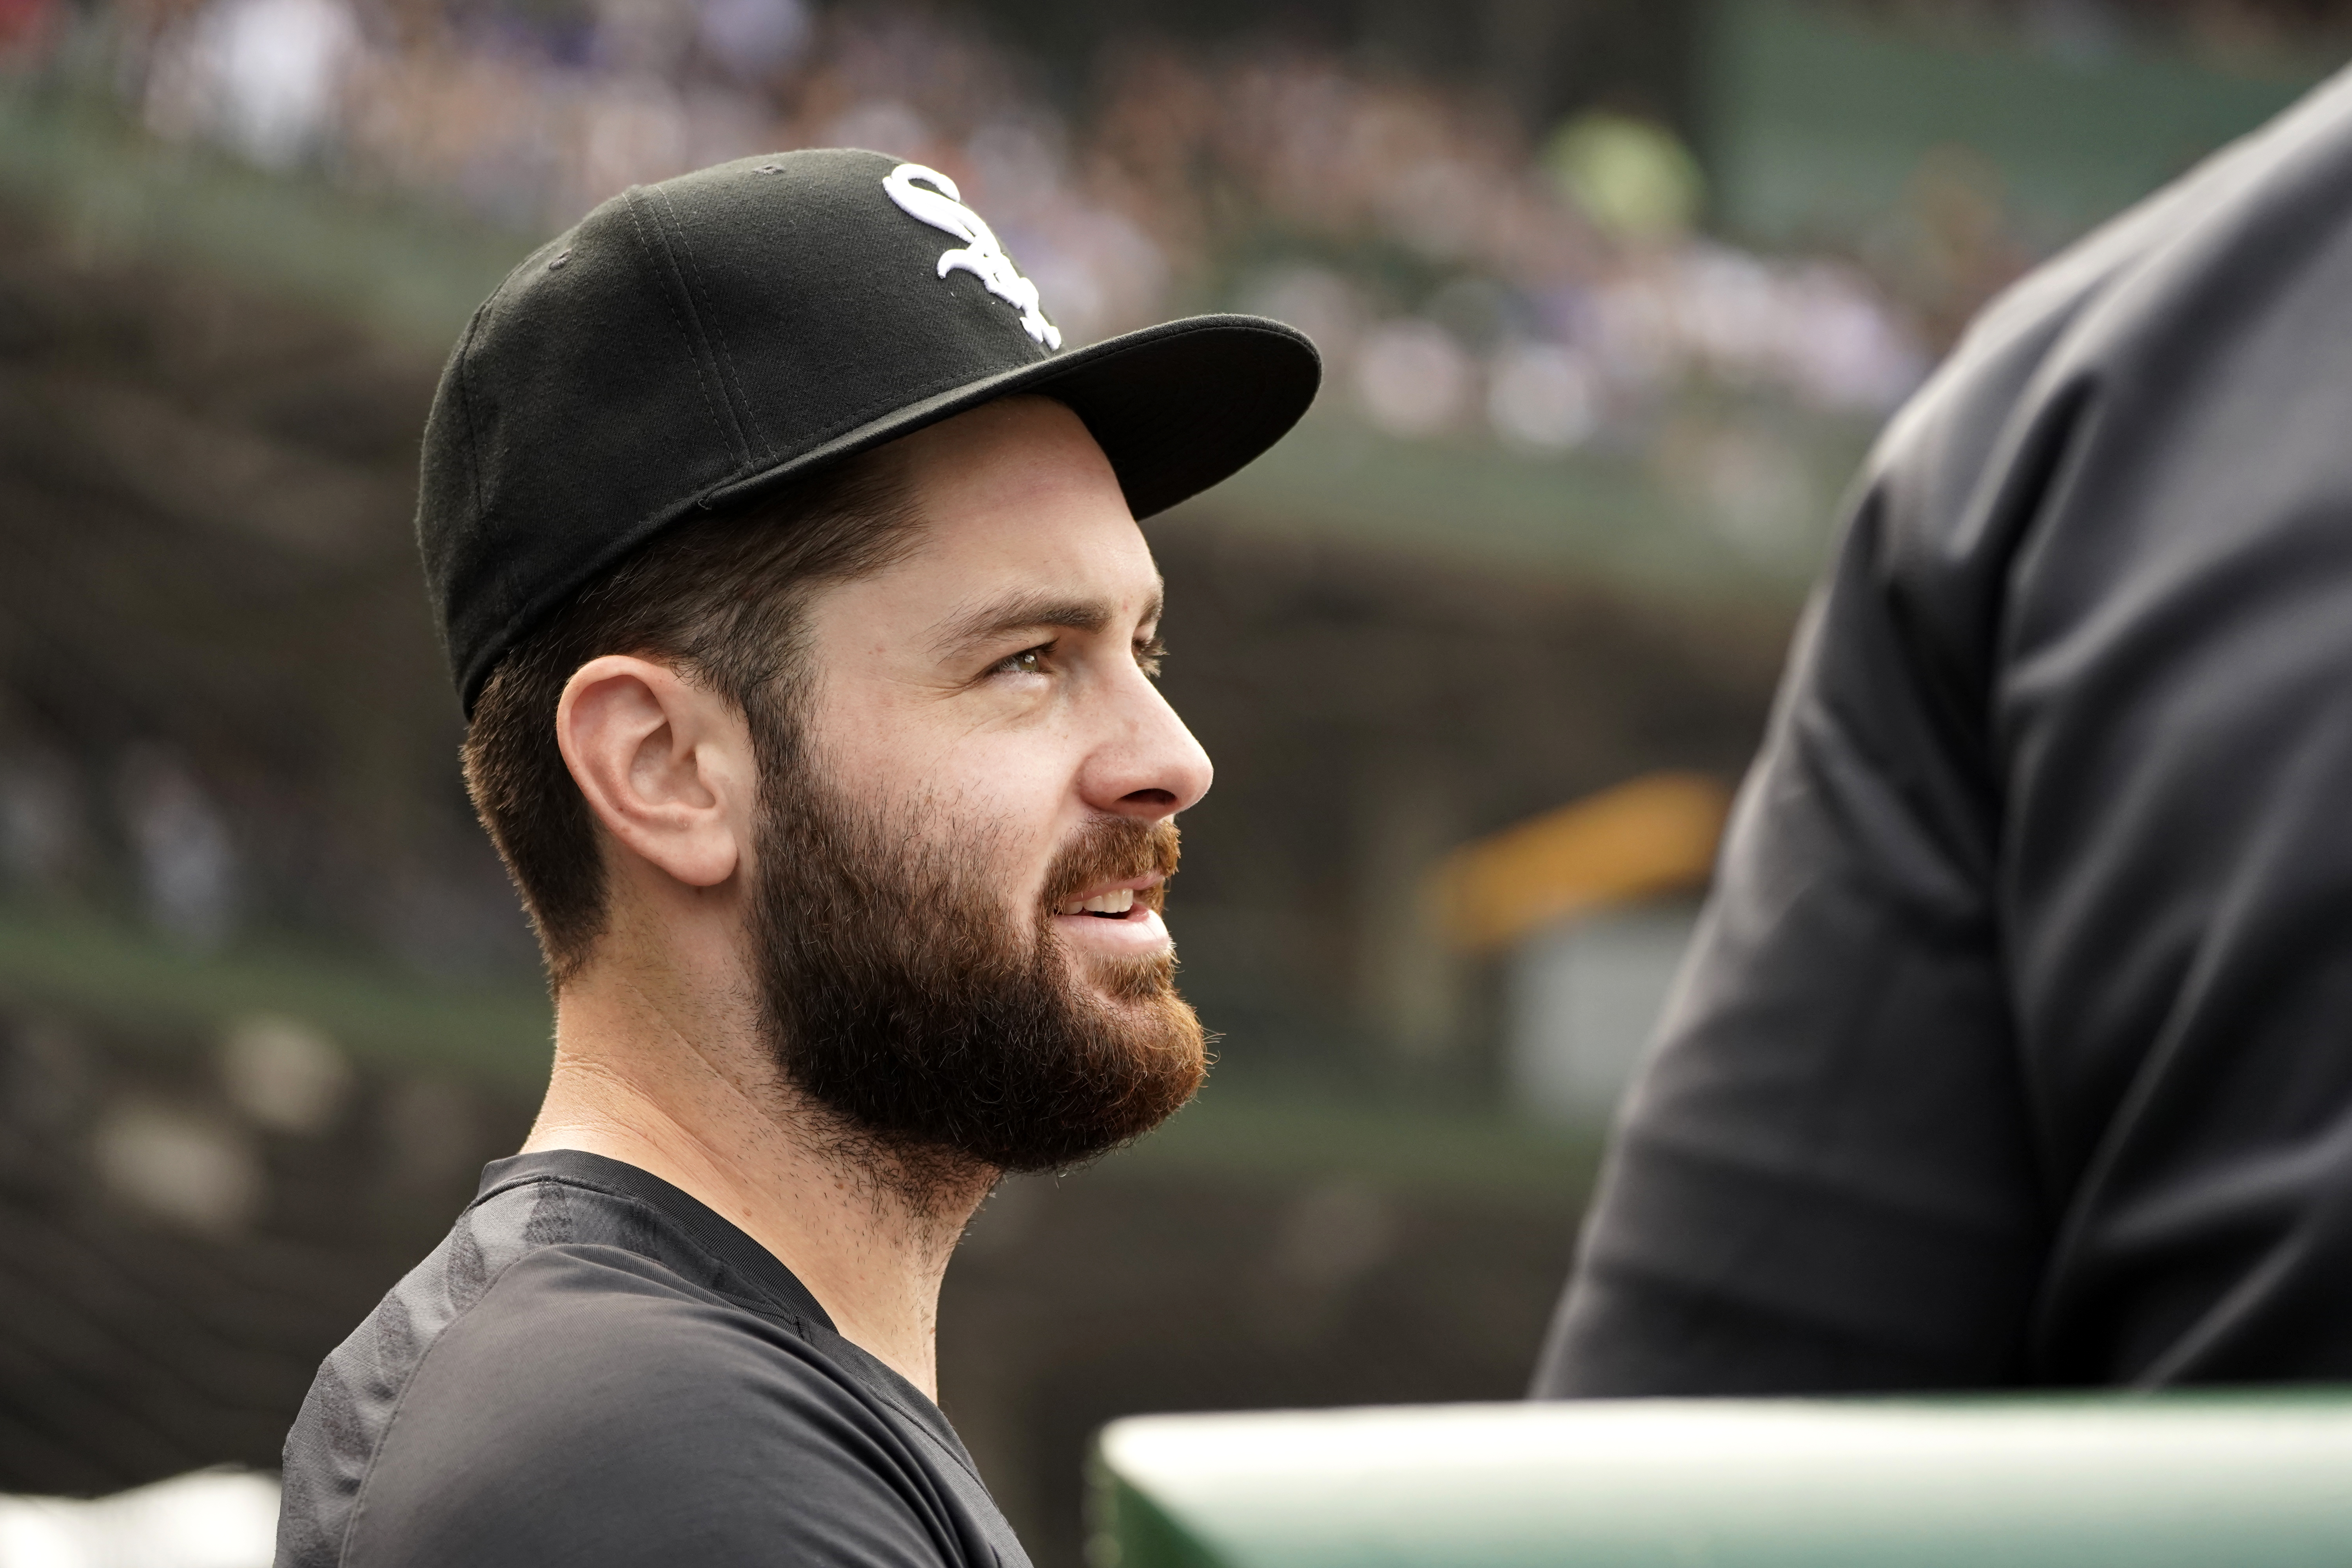 The White Sox' Lucas Giolito is scheduled to start on Wednesday, the one-year anniversary of his no-hitter.